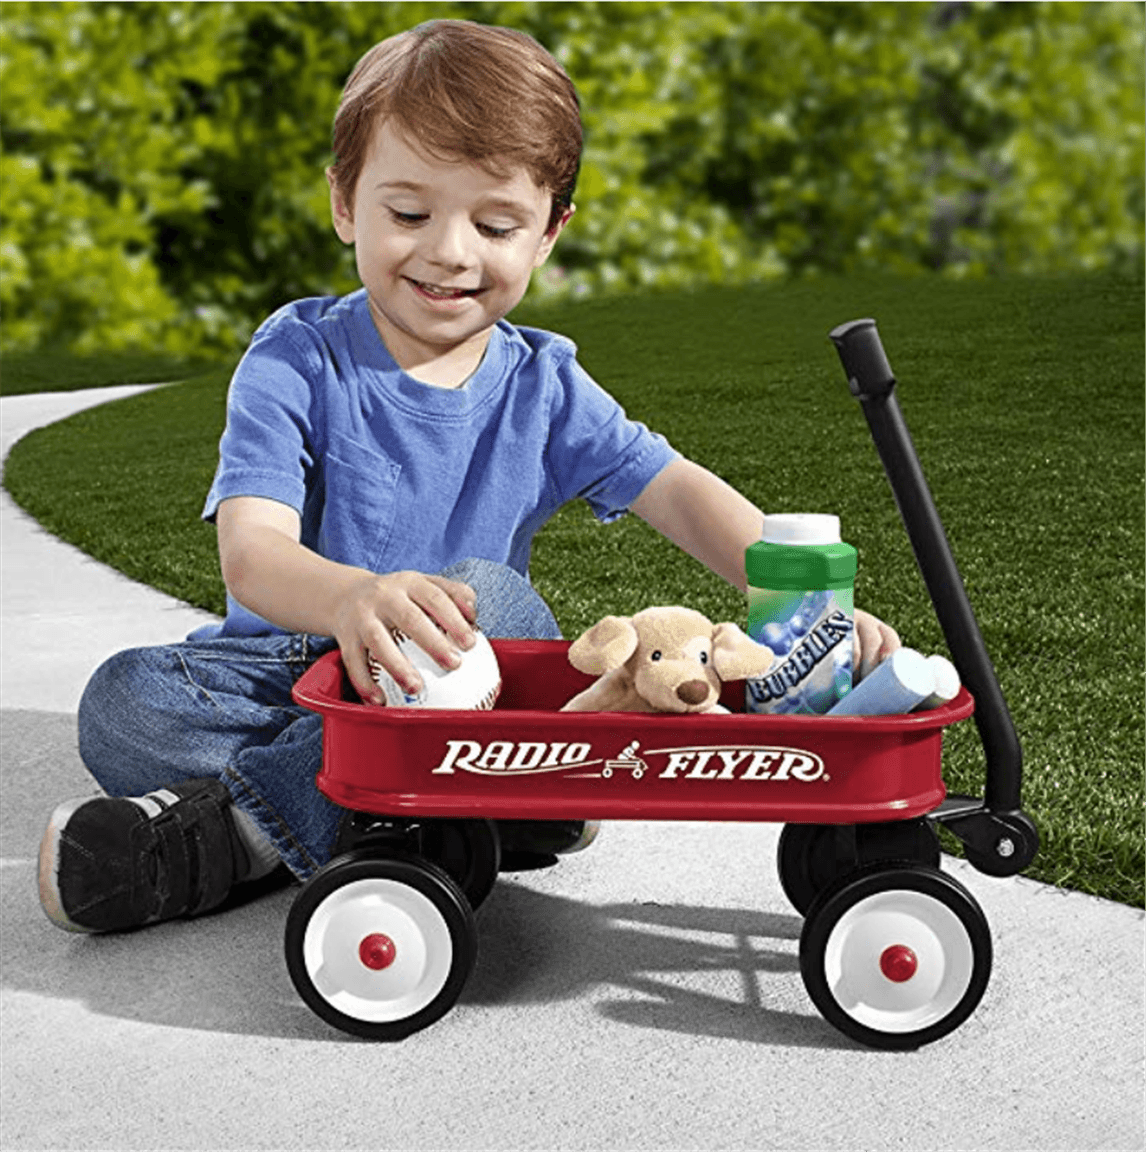 Amazon – Radio Flyer Little Red Toy Wagon Only $9.97, Reg $14.99!